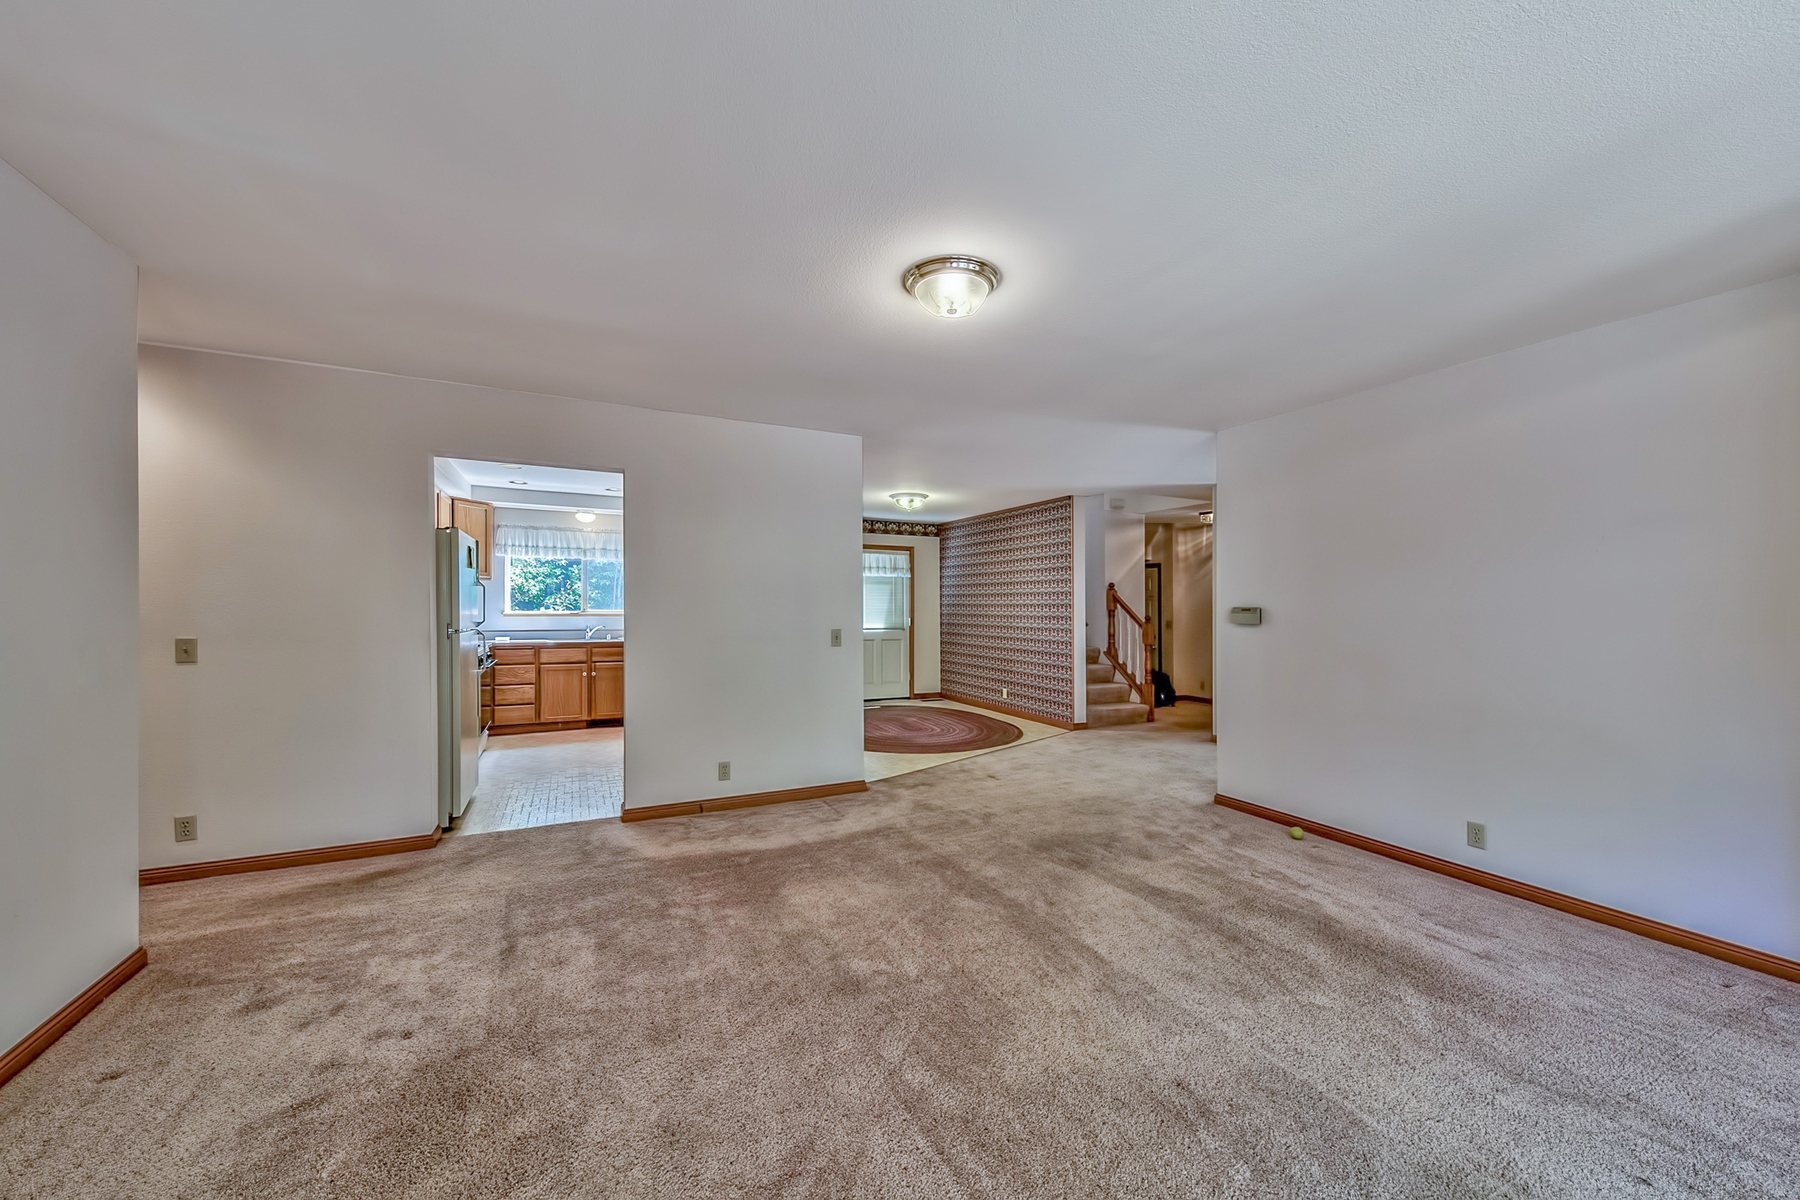 Additional photo for property listing at 2226 Lupine Trail, South Lake Tahoe CA, 96150 2226 Lupine Trail South Lake Tahoe, California 96150 United States